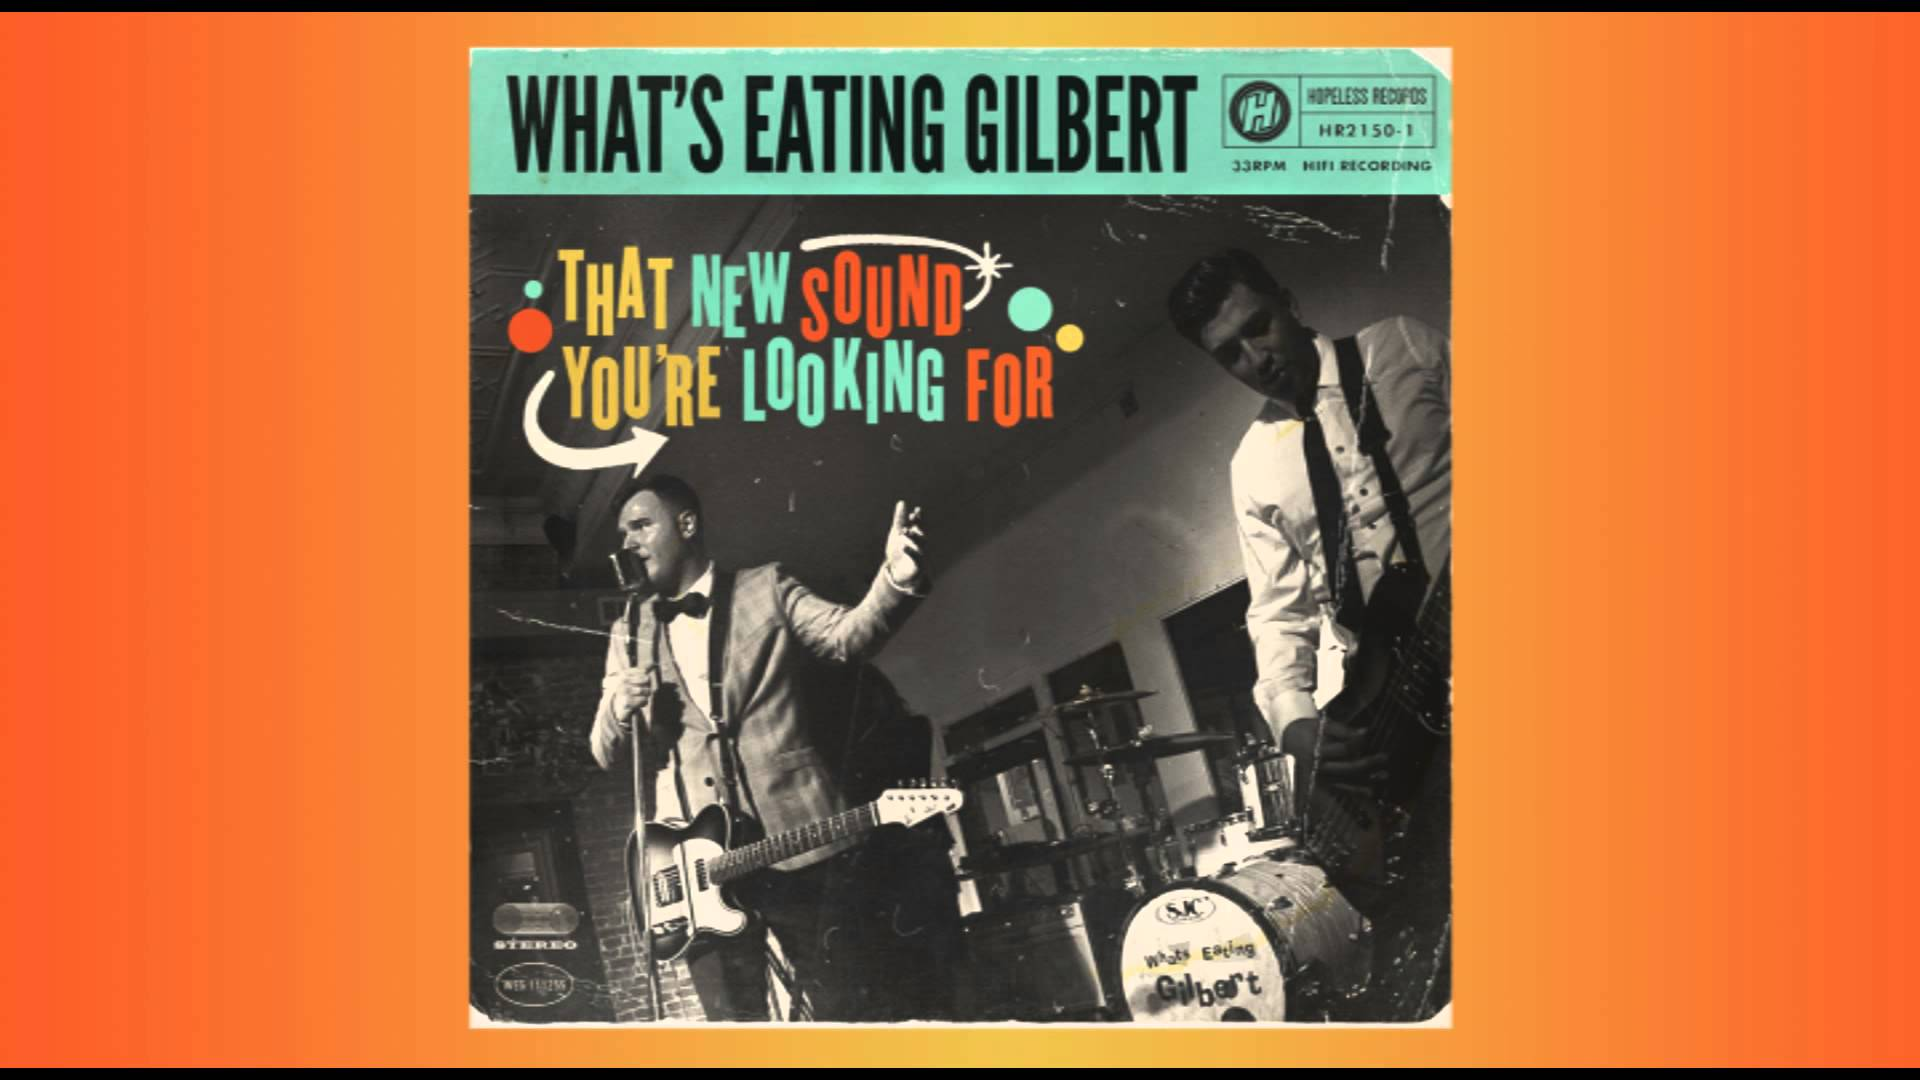 What's Eating Gilbert - A Song About Girls